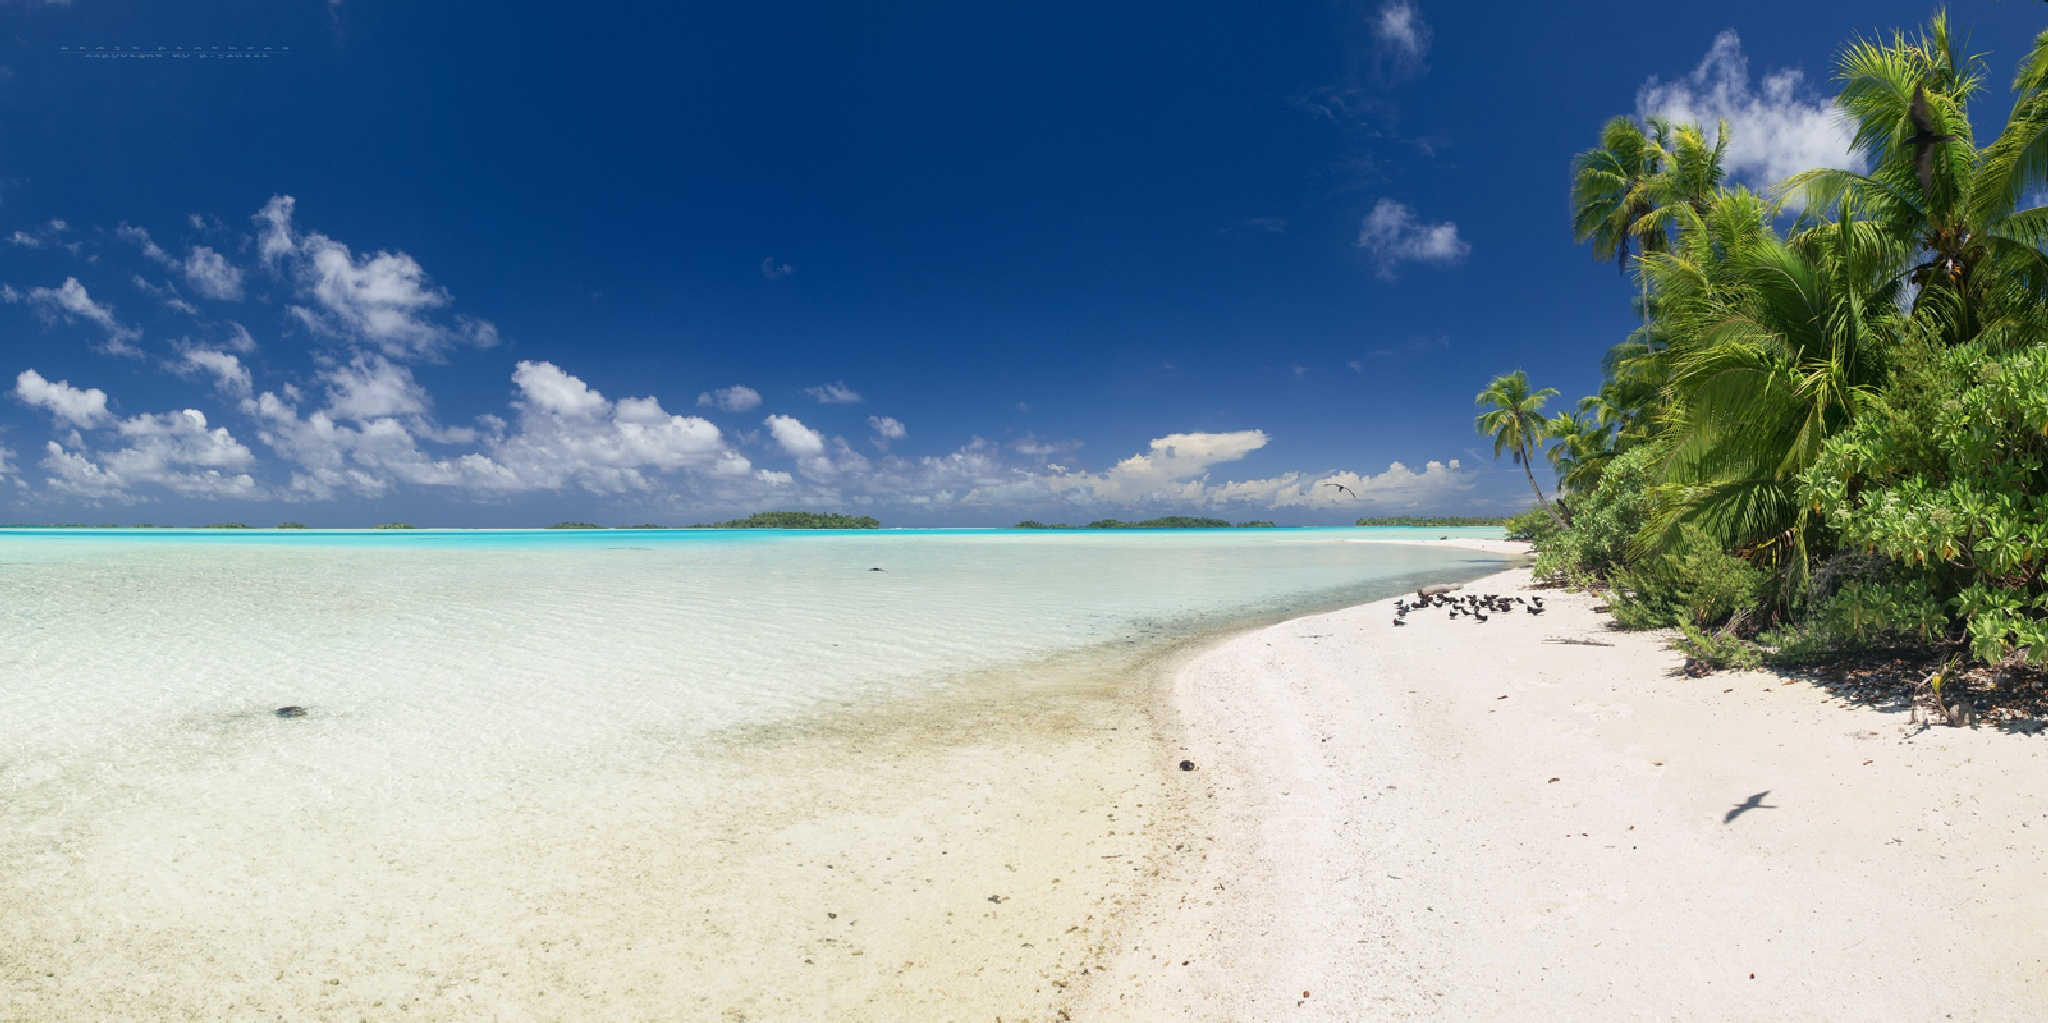 Rangiroa Atoll - French Polynesia 2015 by etdjtpictures